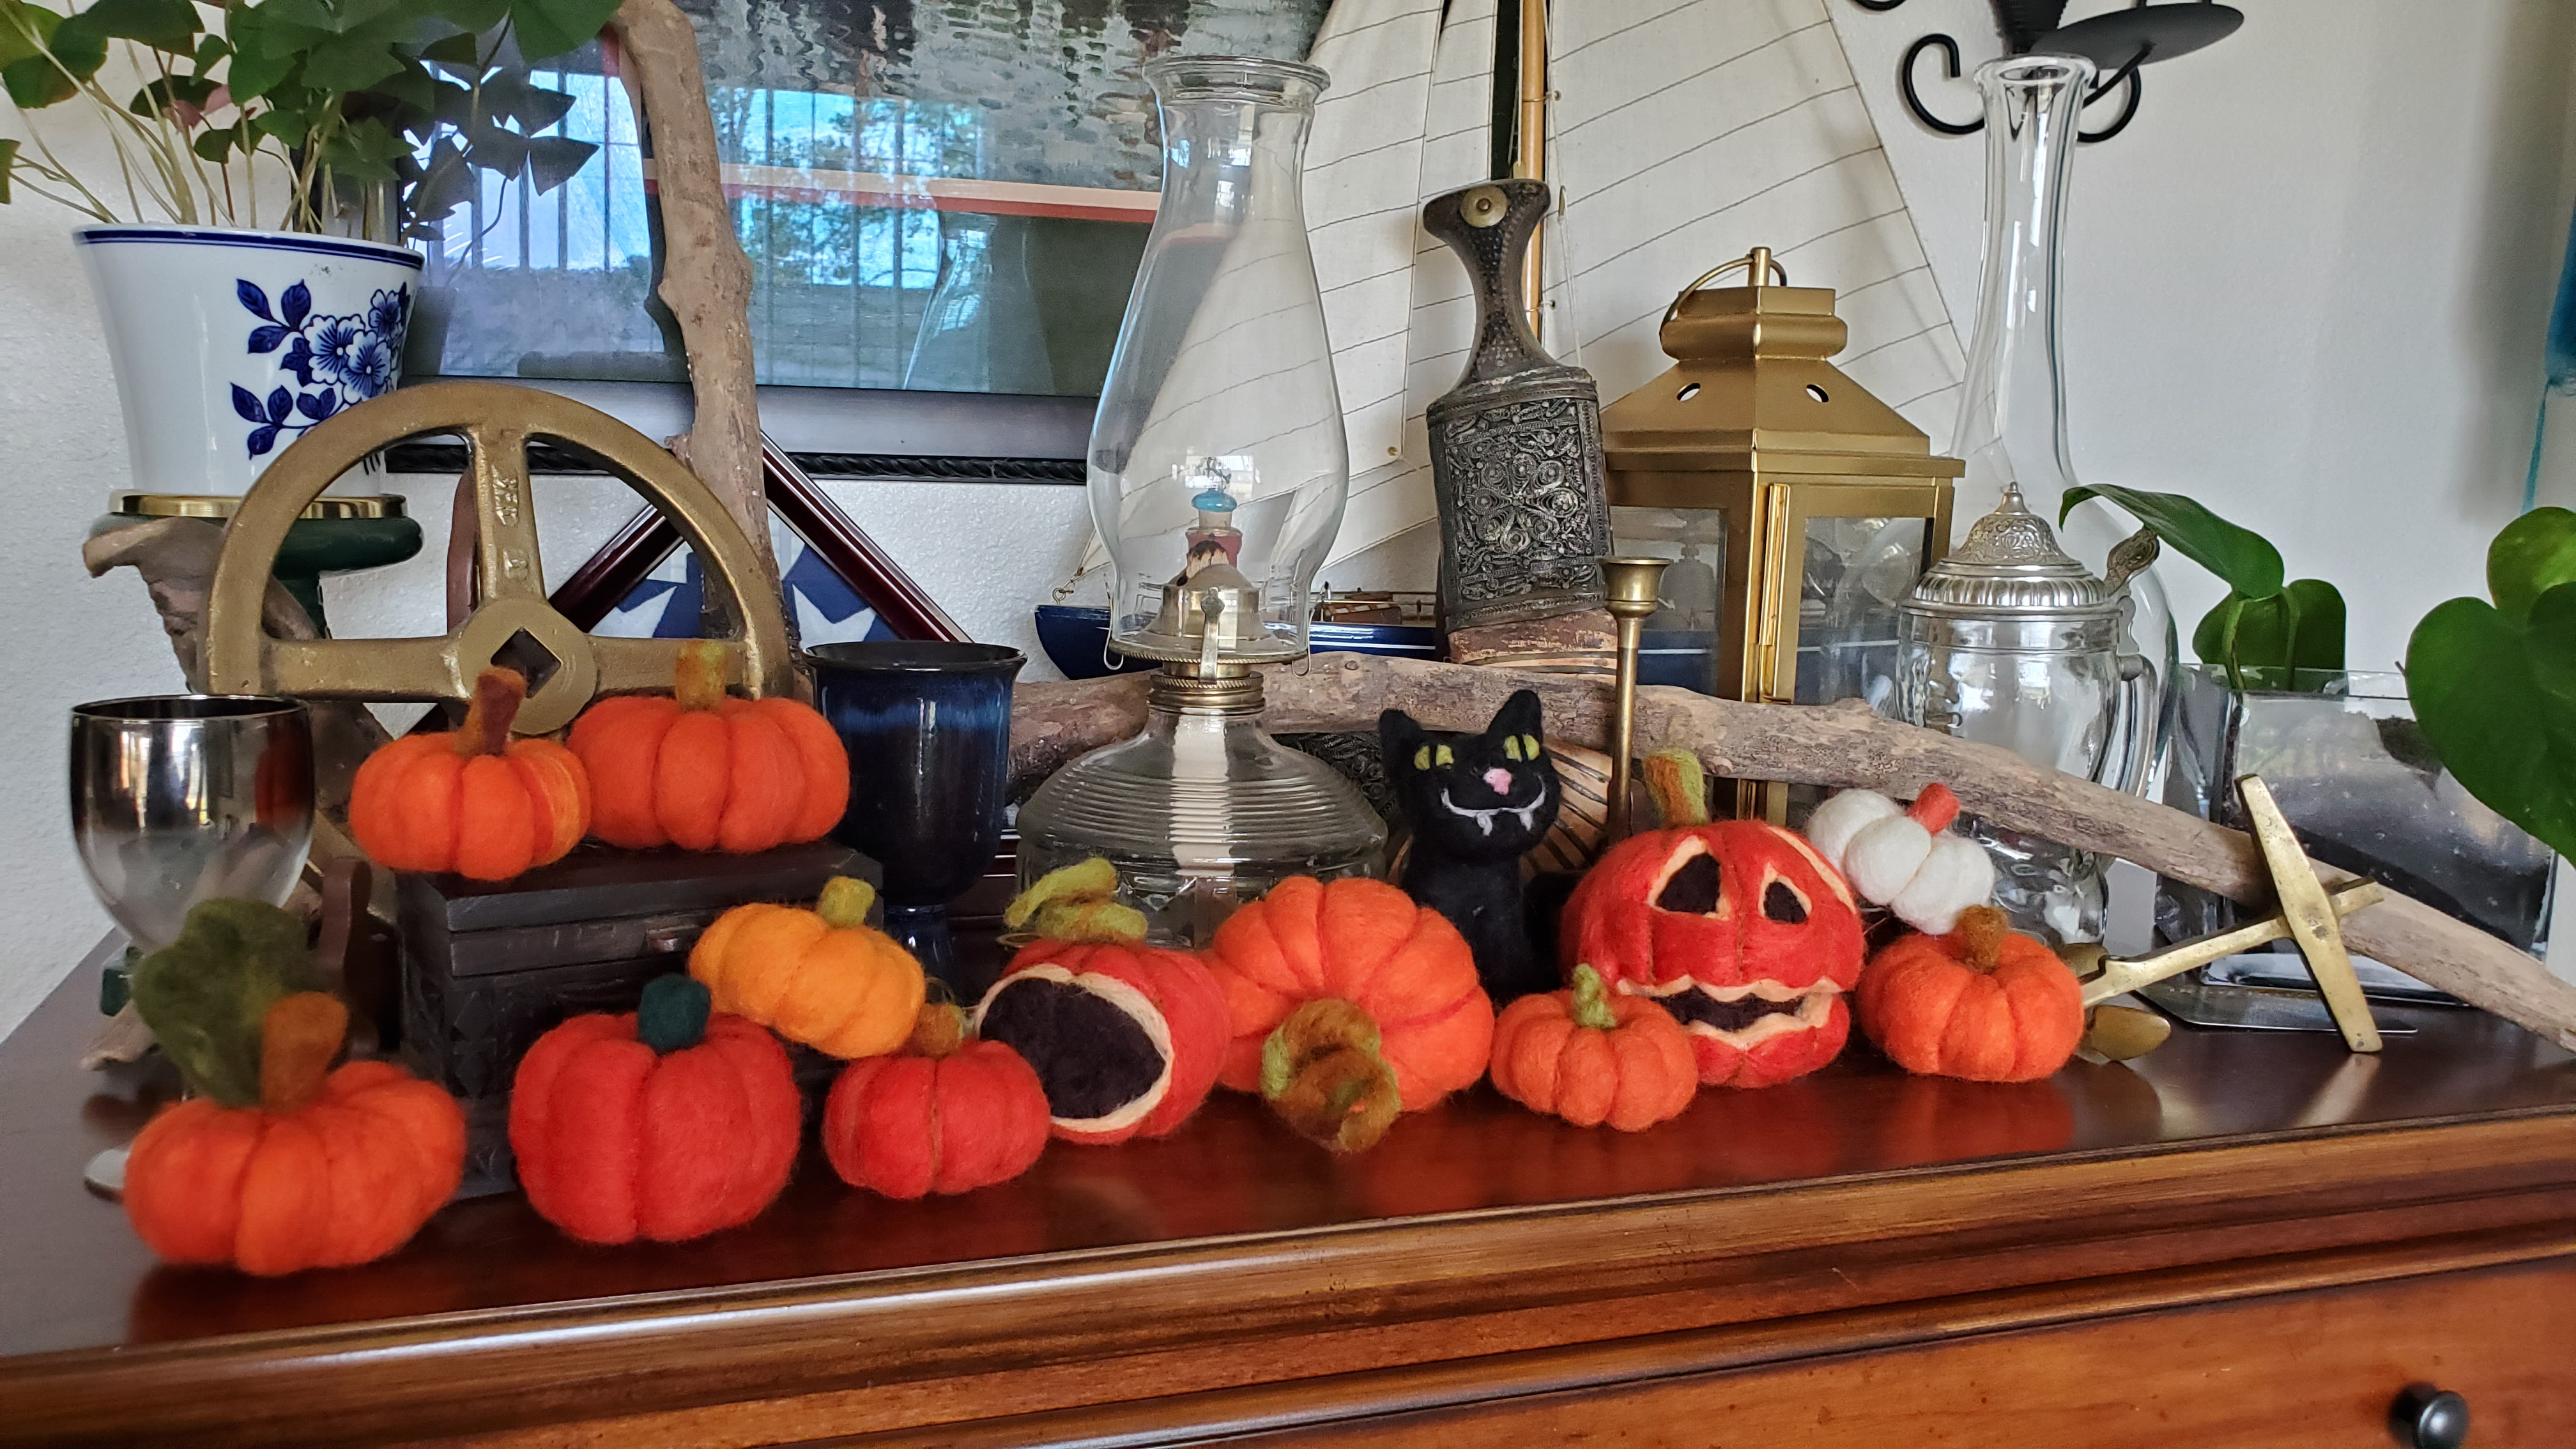 a wooden furniture top covered in small wool felted pumpkins